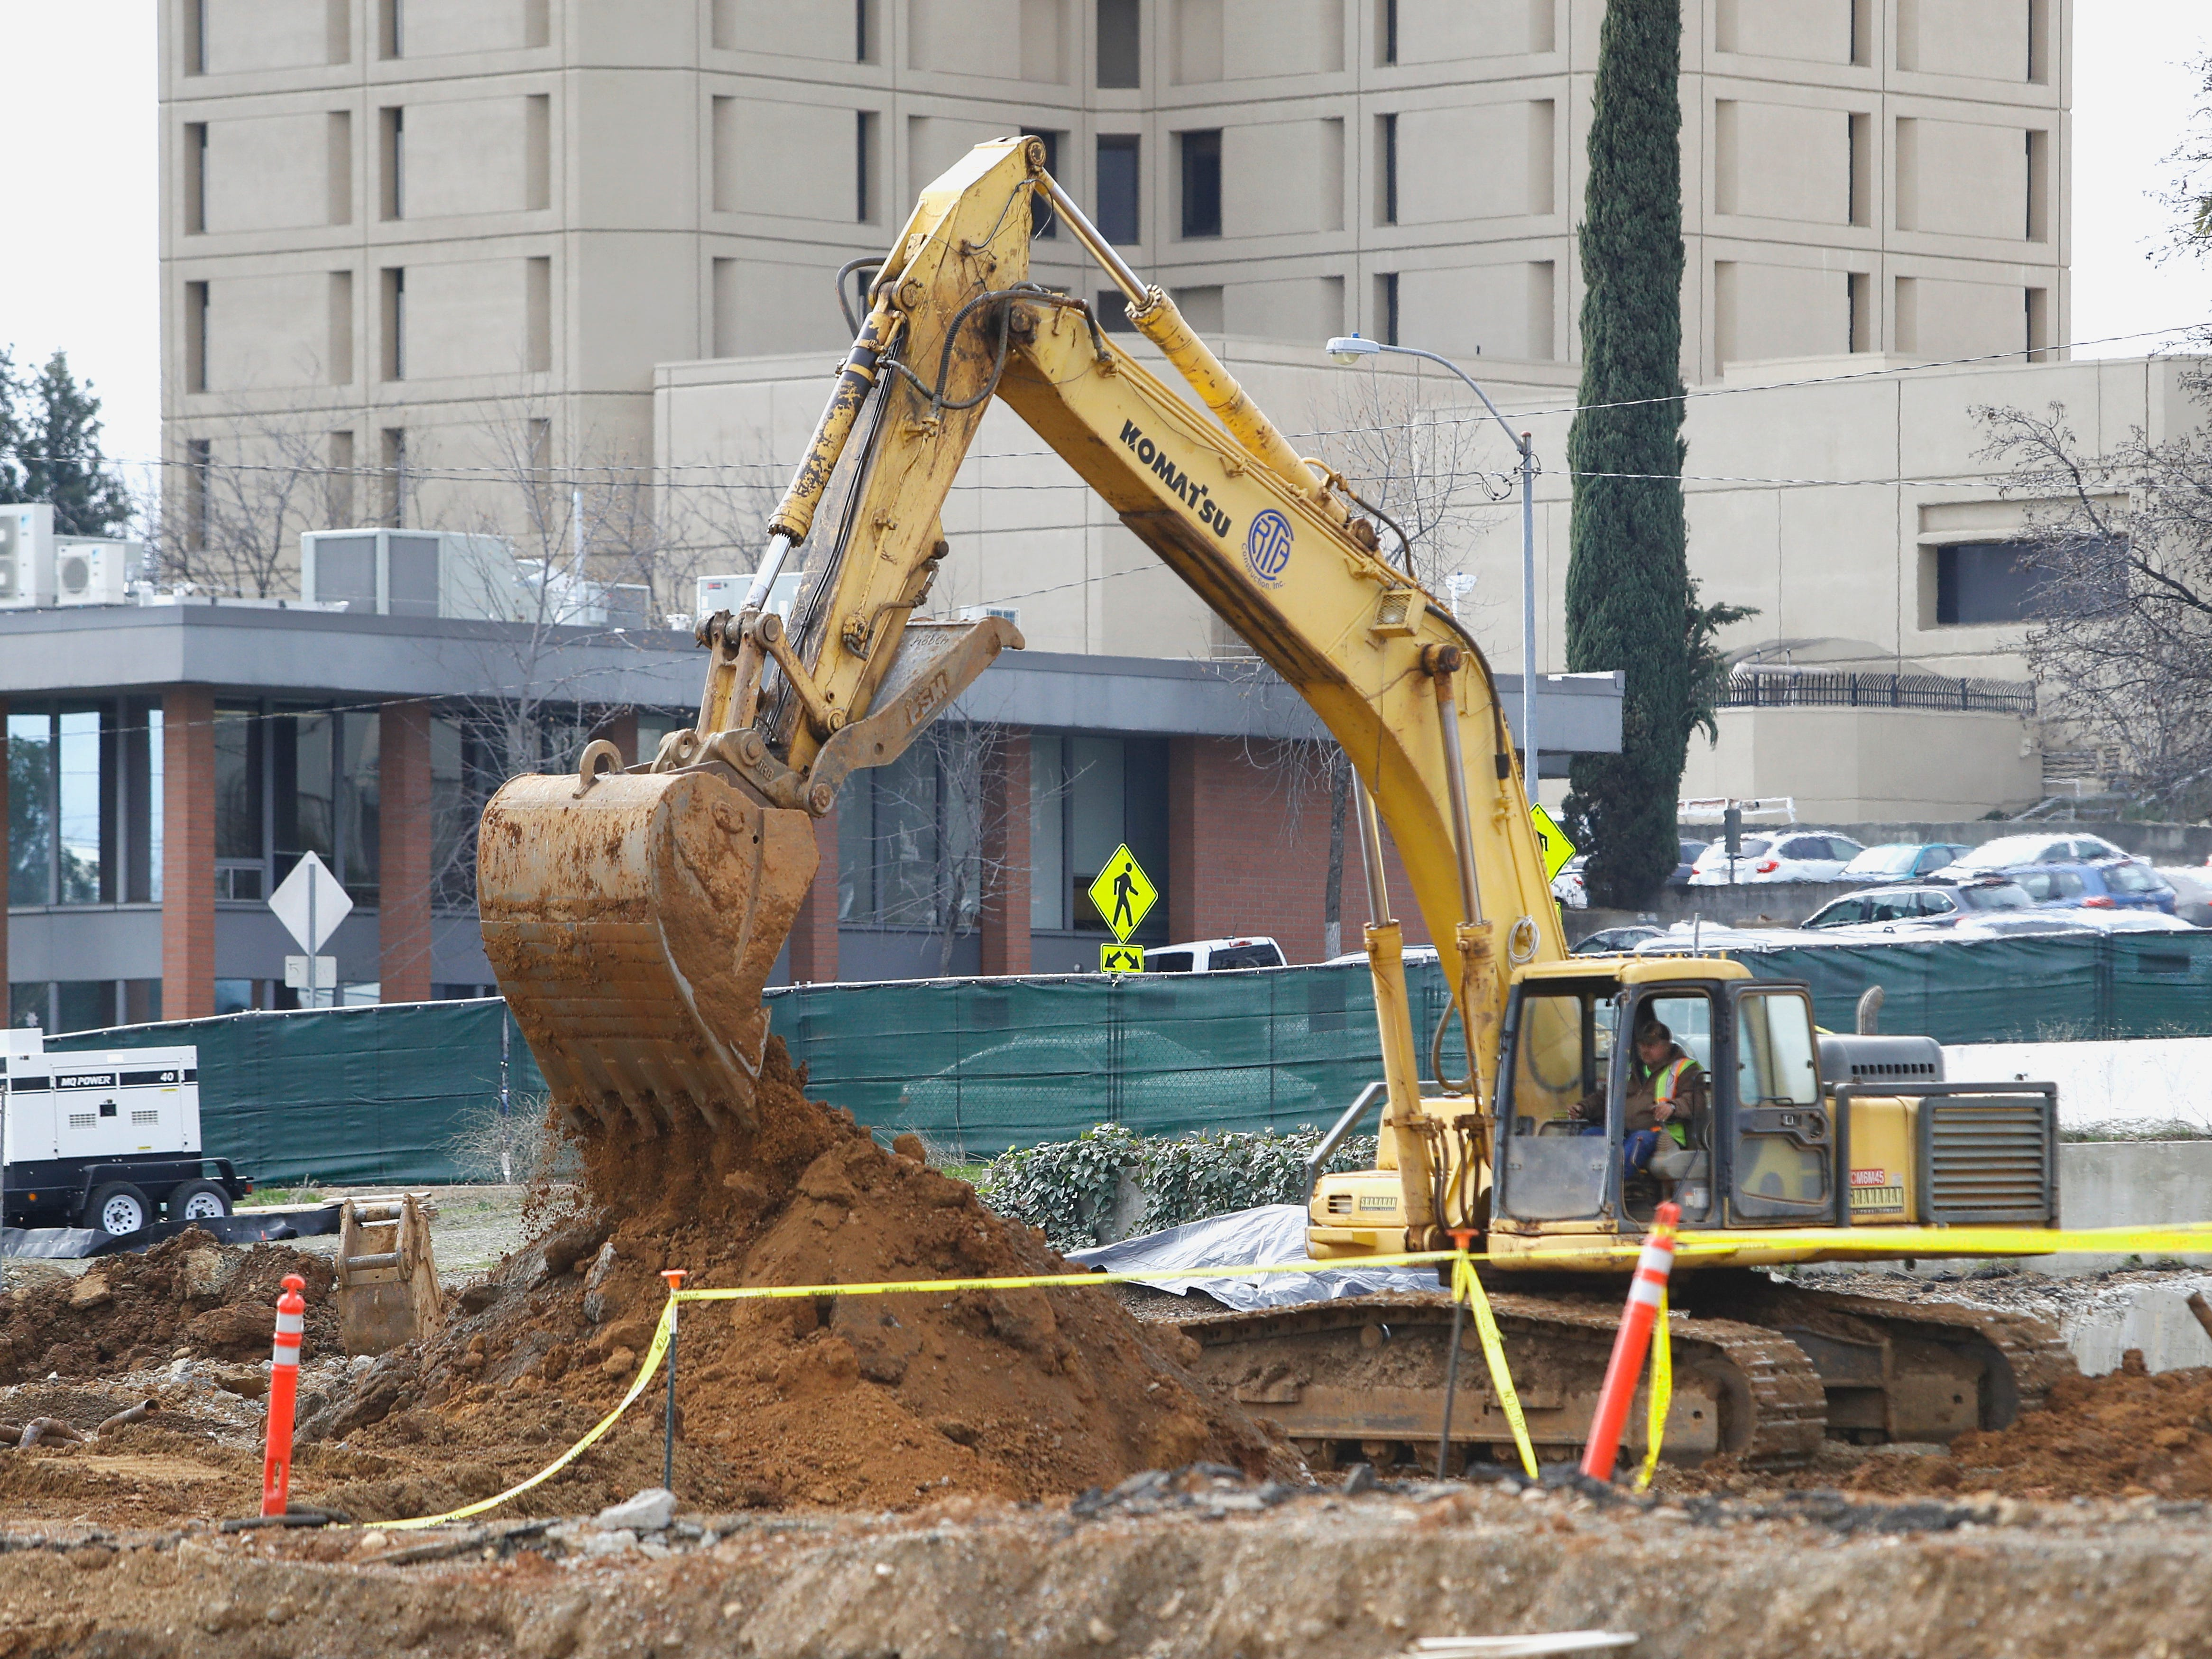 An excavator digs up dirt Friday at the site of the new Shasta County Courthouse on the same day dignitaries held a groundbreaking across the street.